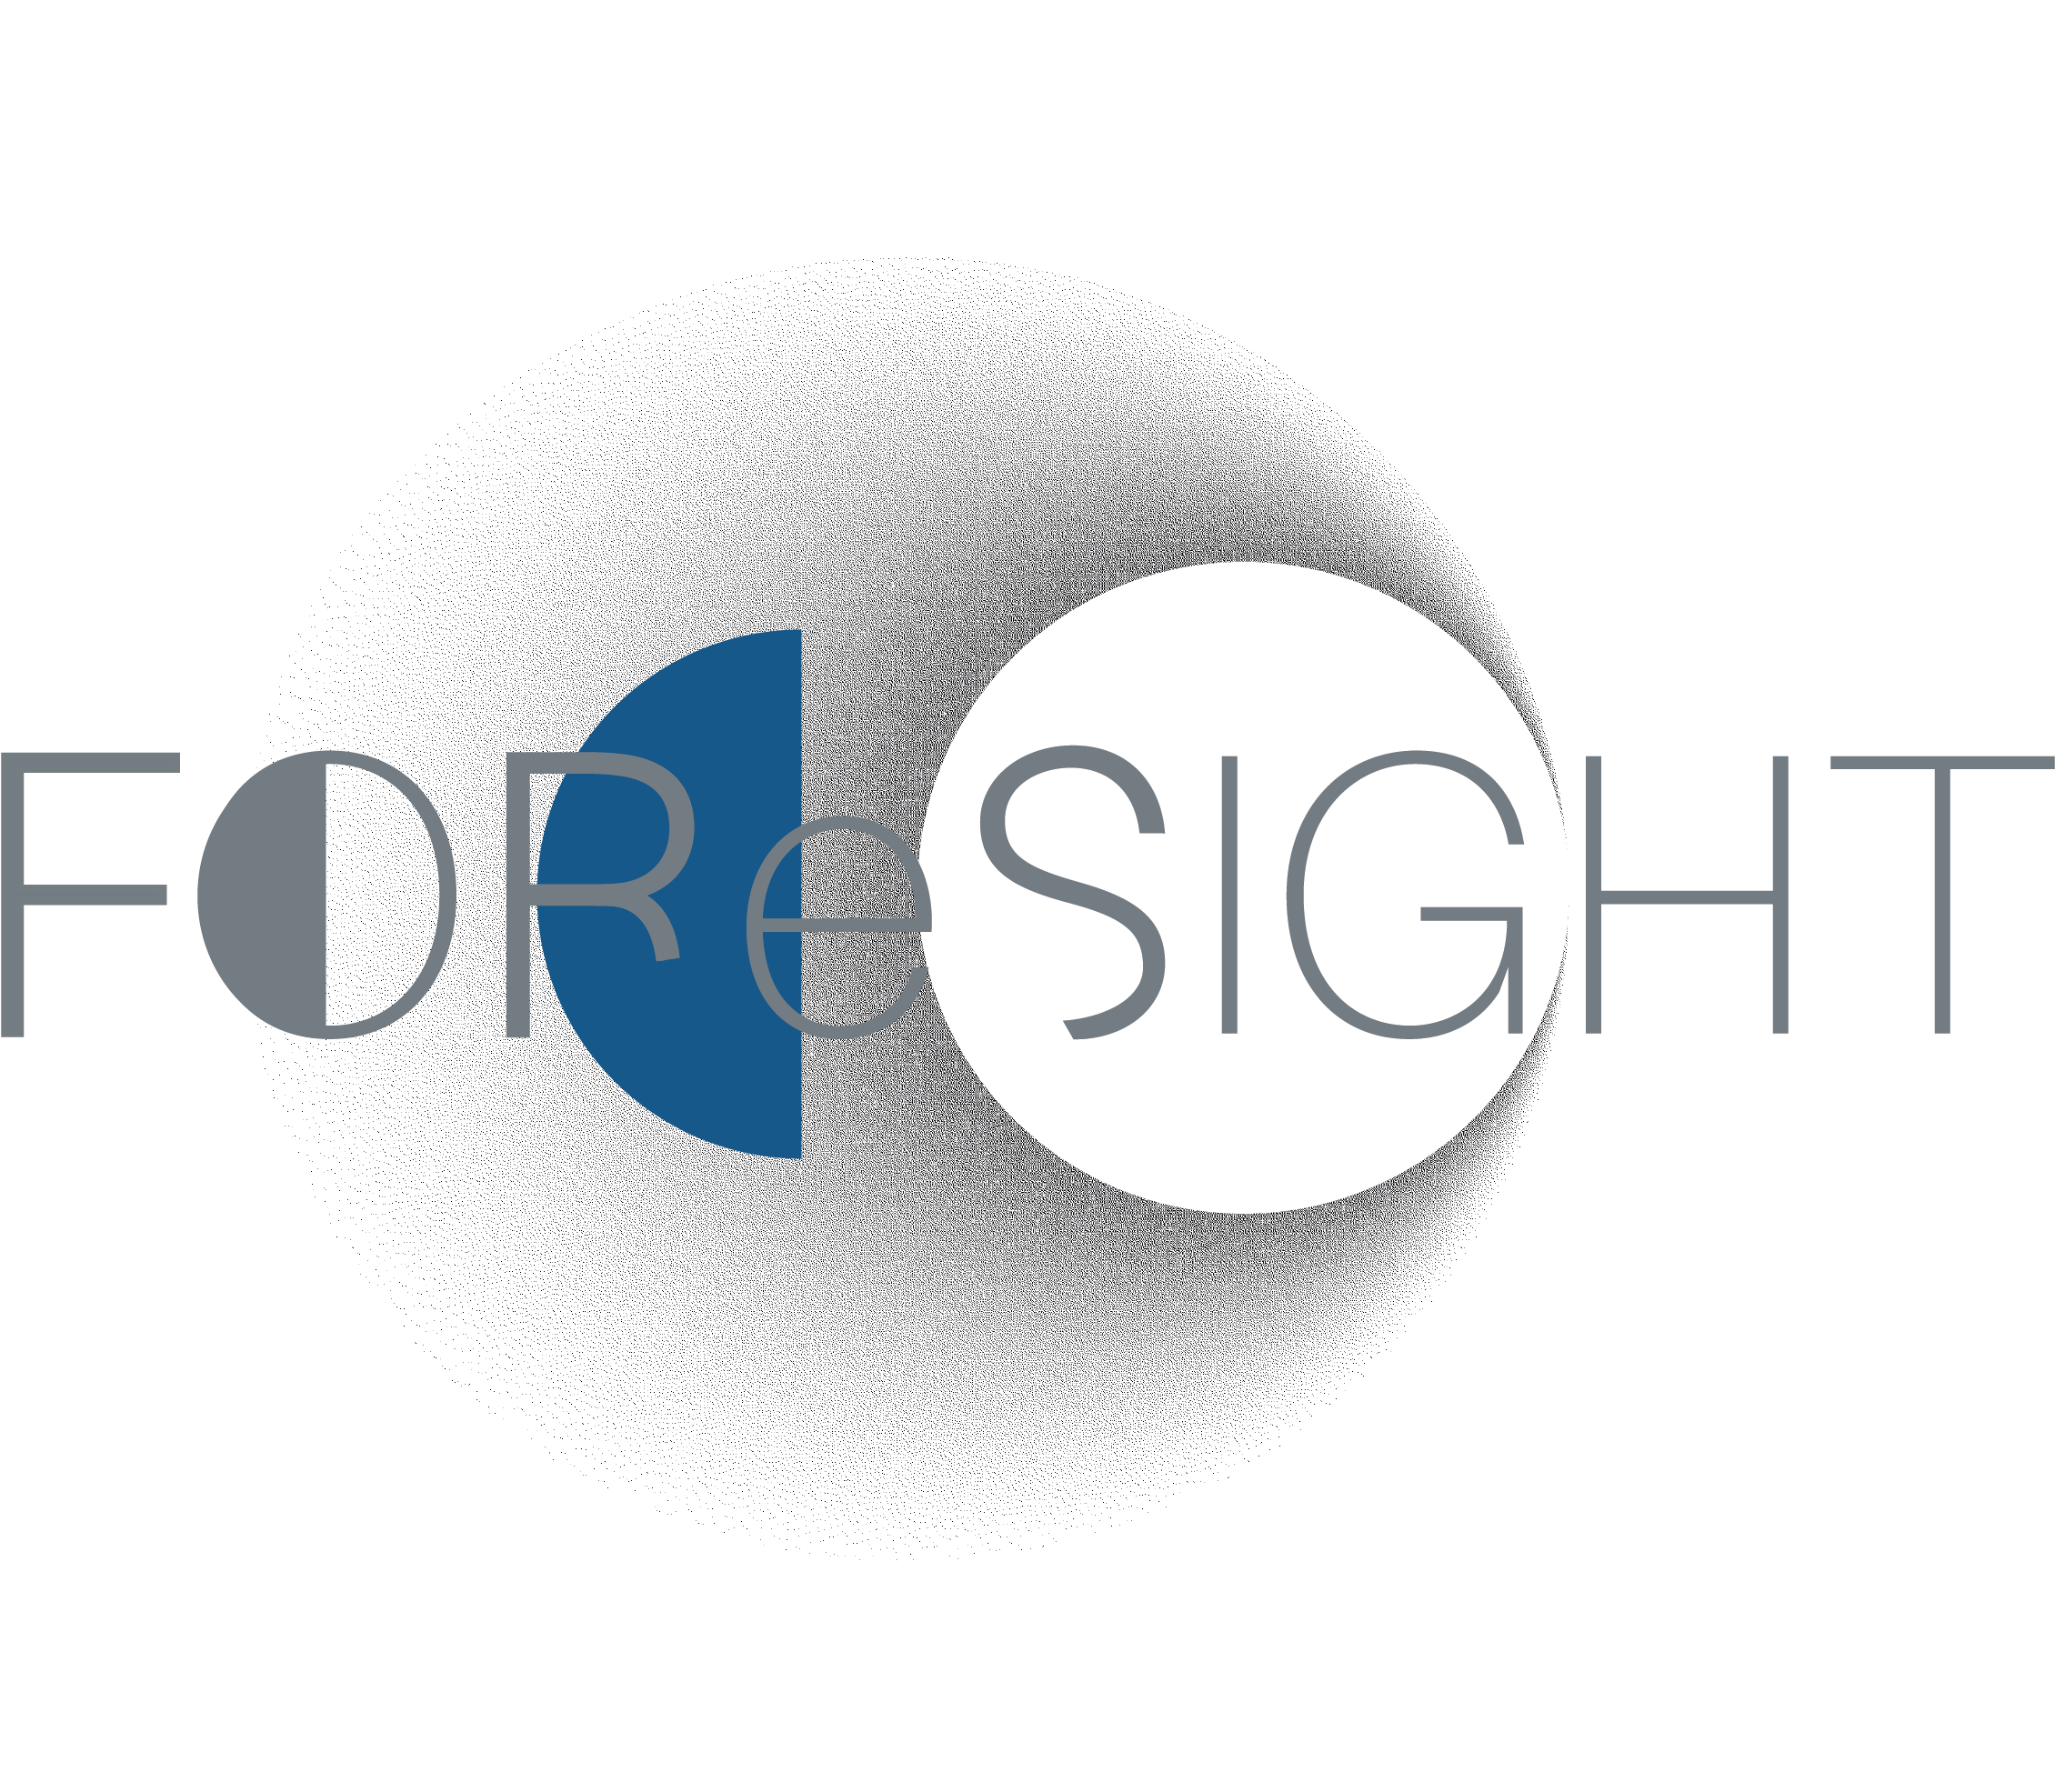 LOGO ForeSight